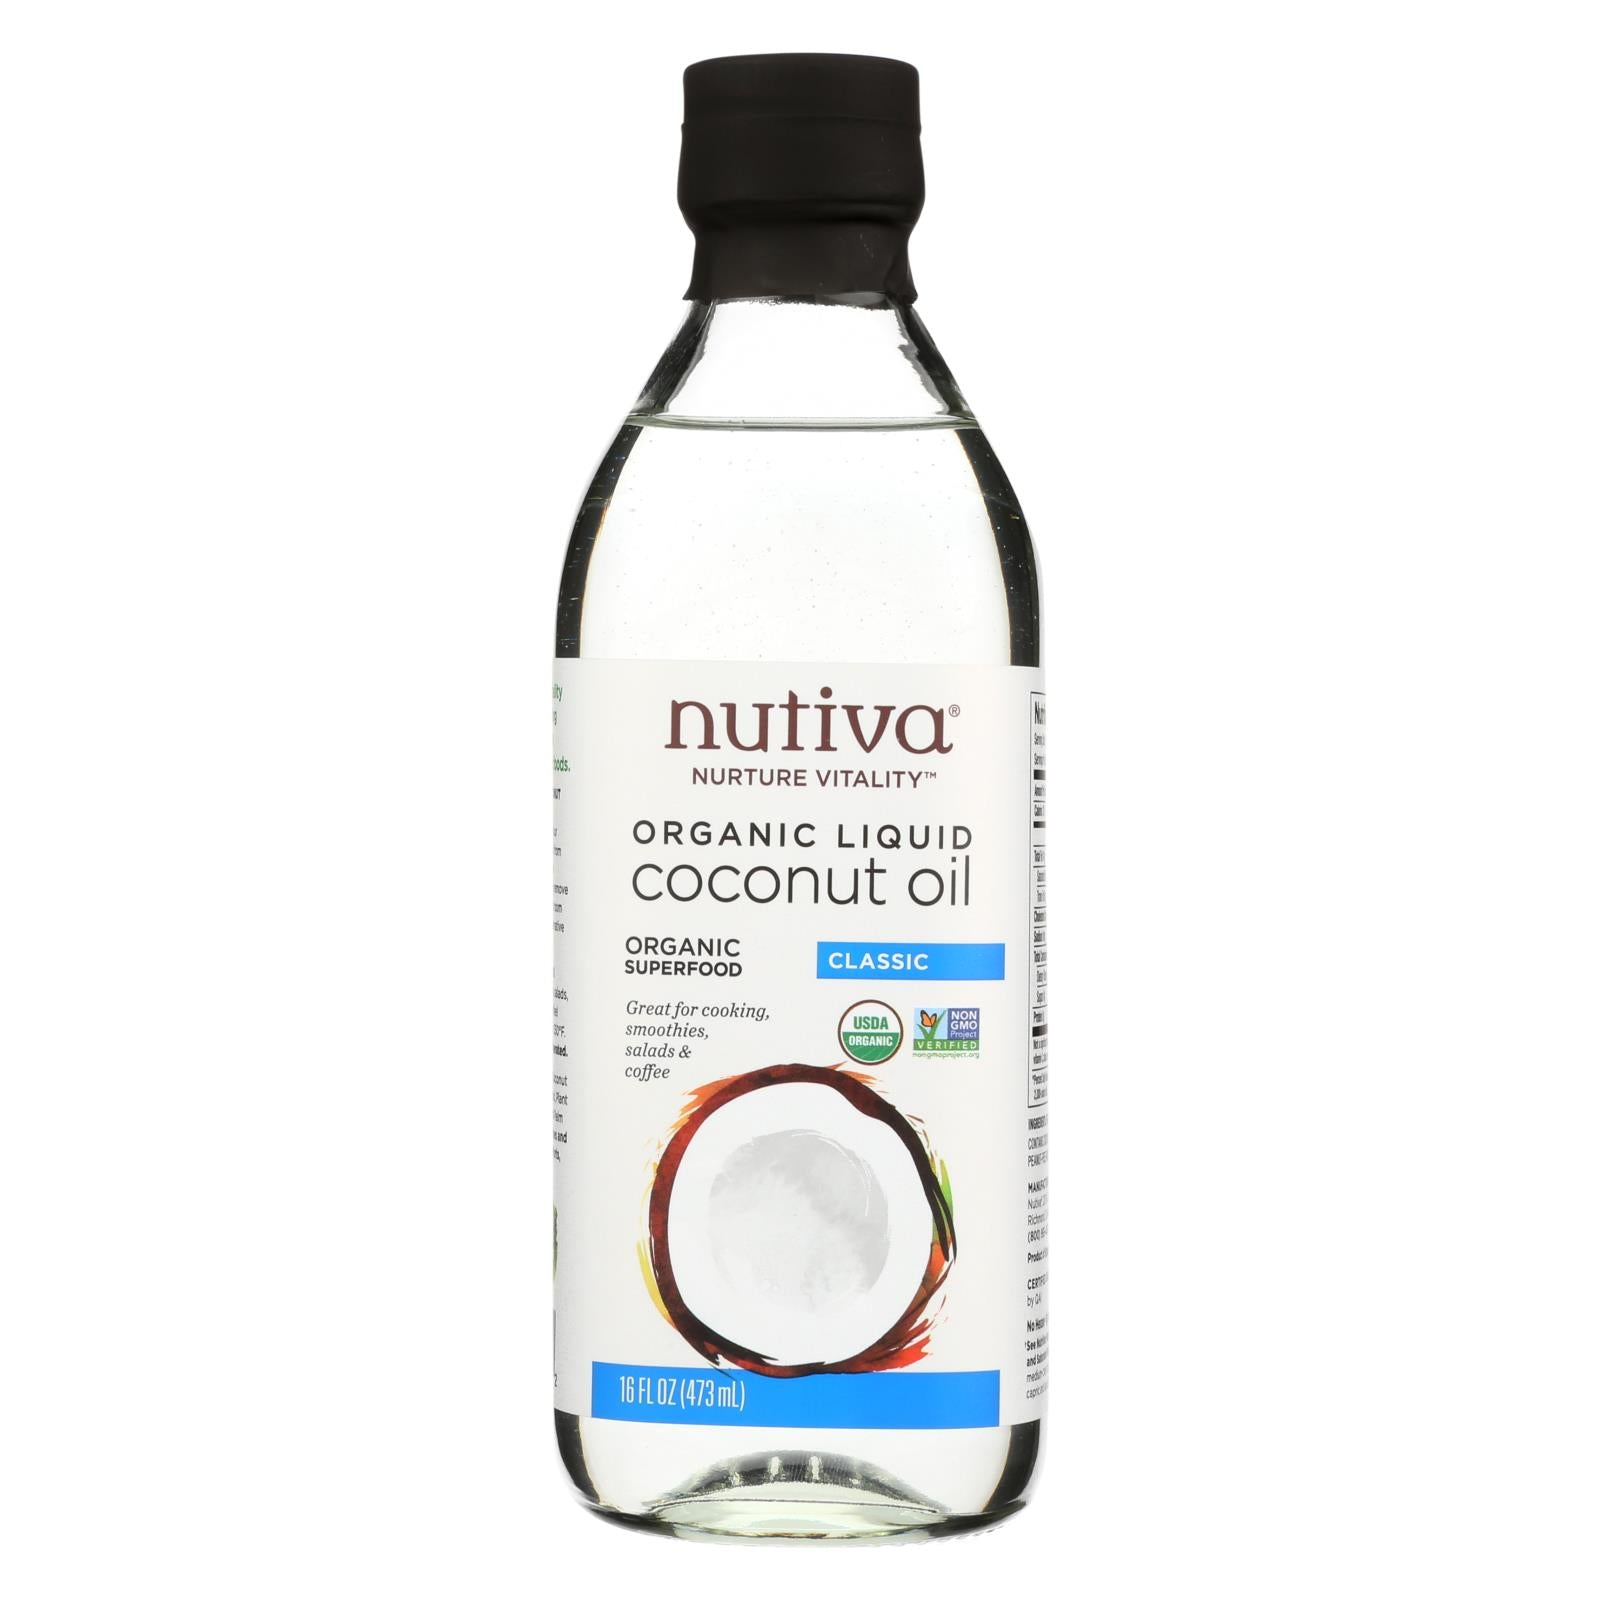 Buy Nutiva 100% Organic Coconut Oil - Classic - Case of 6 - 16 fl oz - Cooking Oils from Veroeco.com